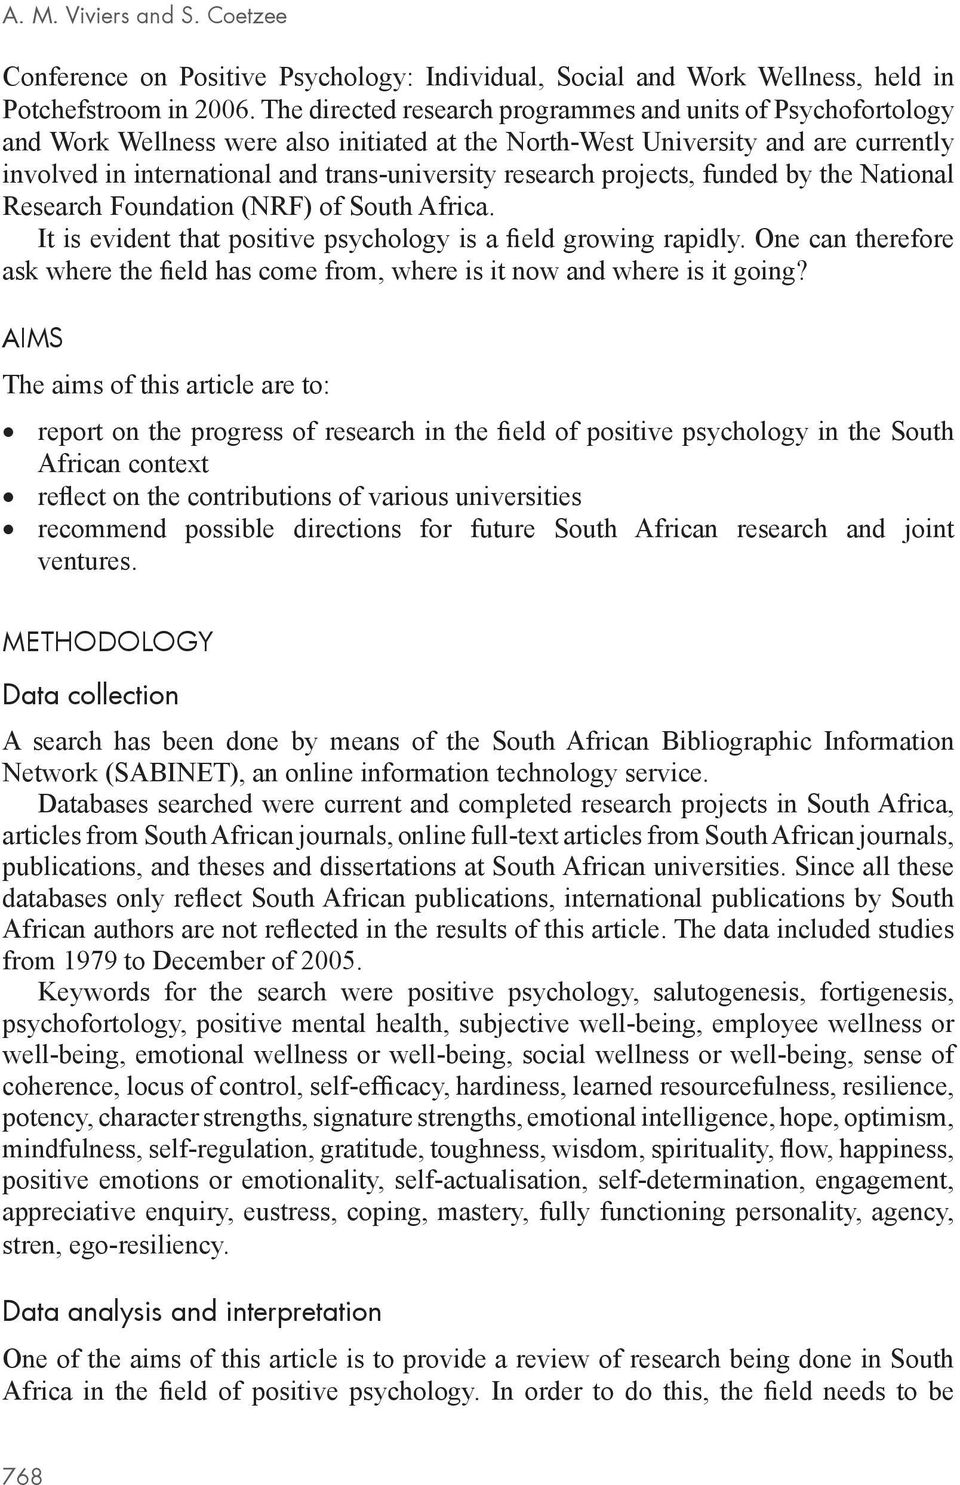 research projects, funded by the National Research Foundation (NRF) of South Africa. It is evident that positive psychology is a field growing rapidly.